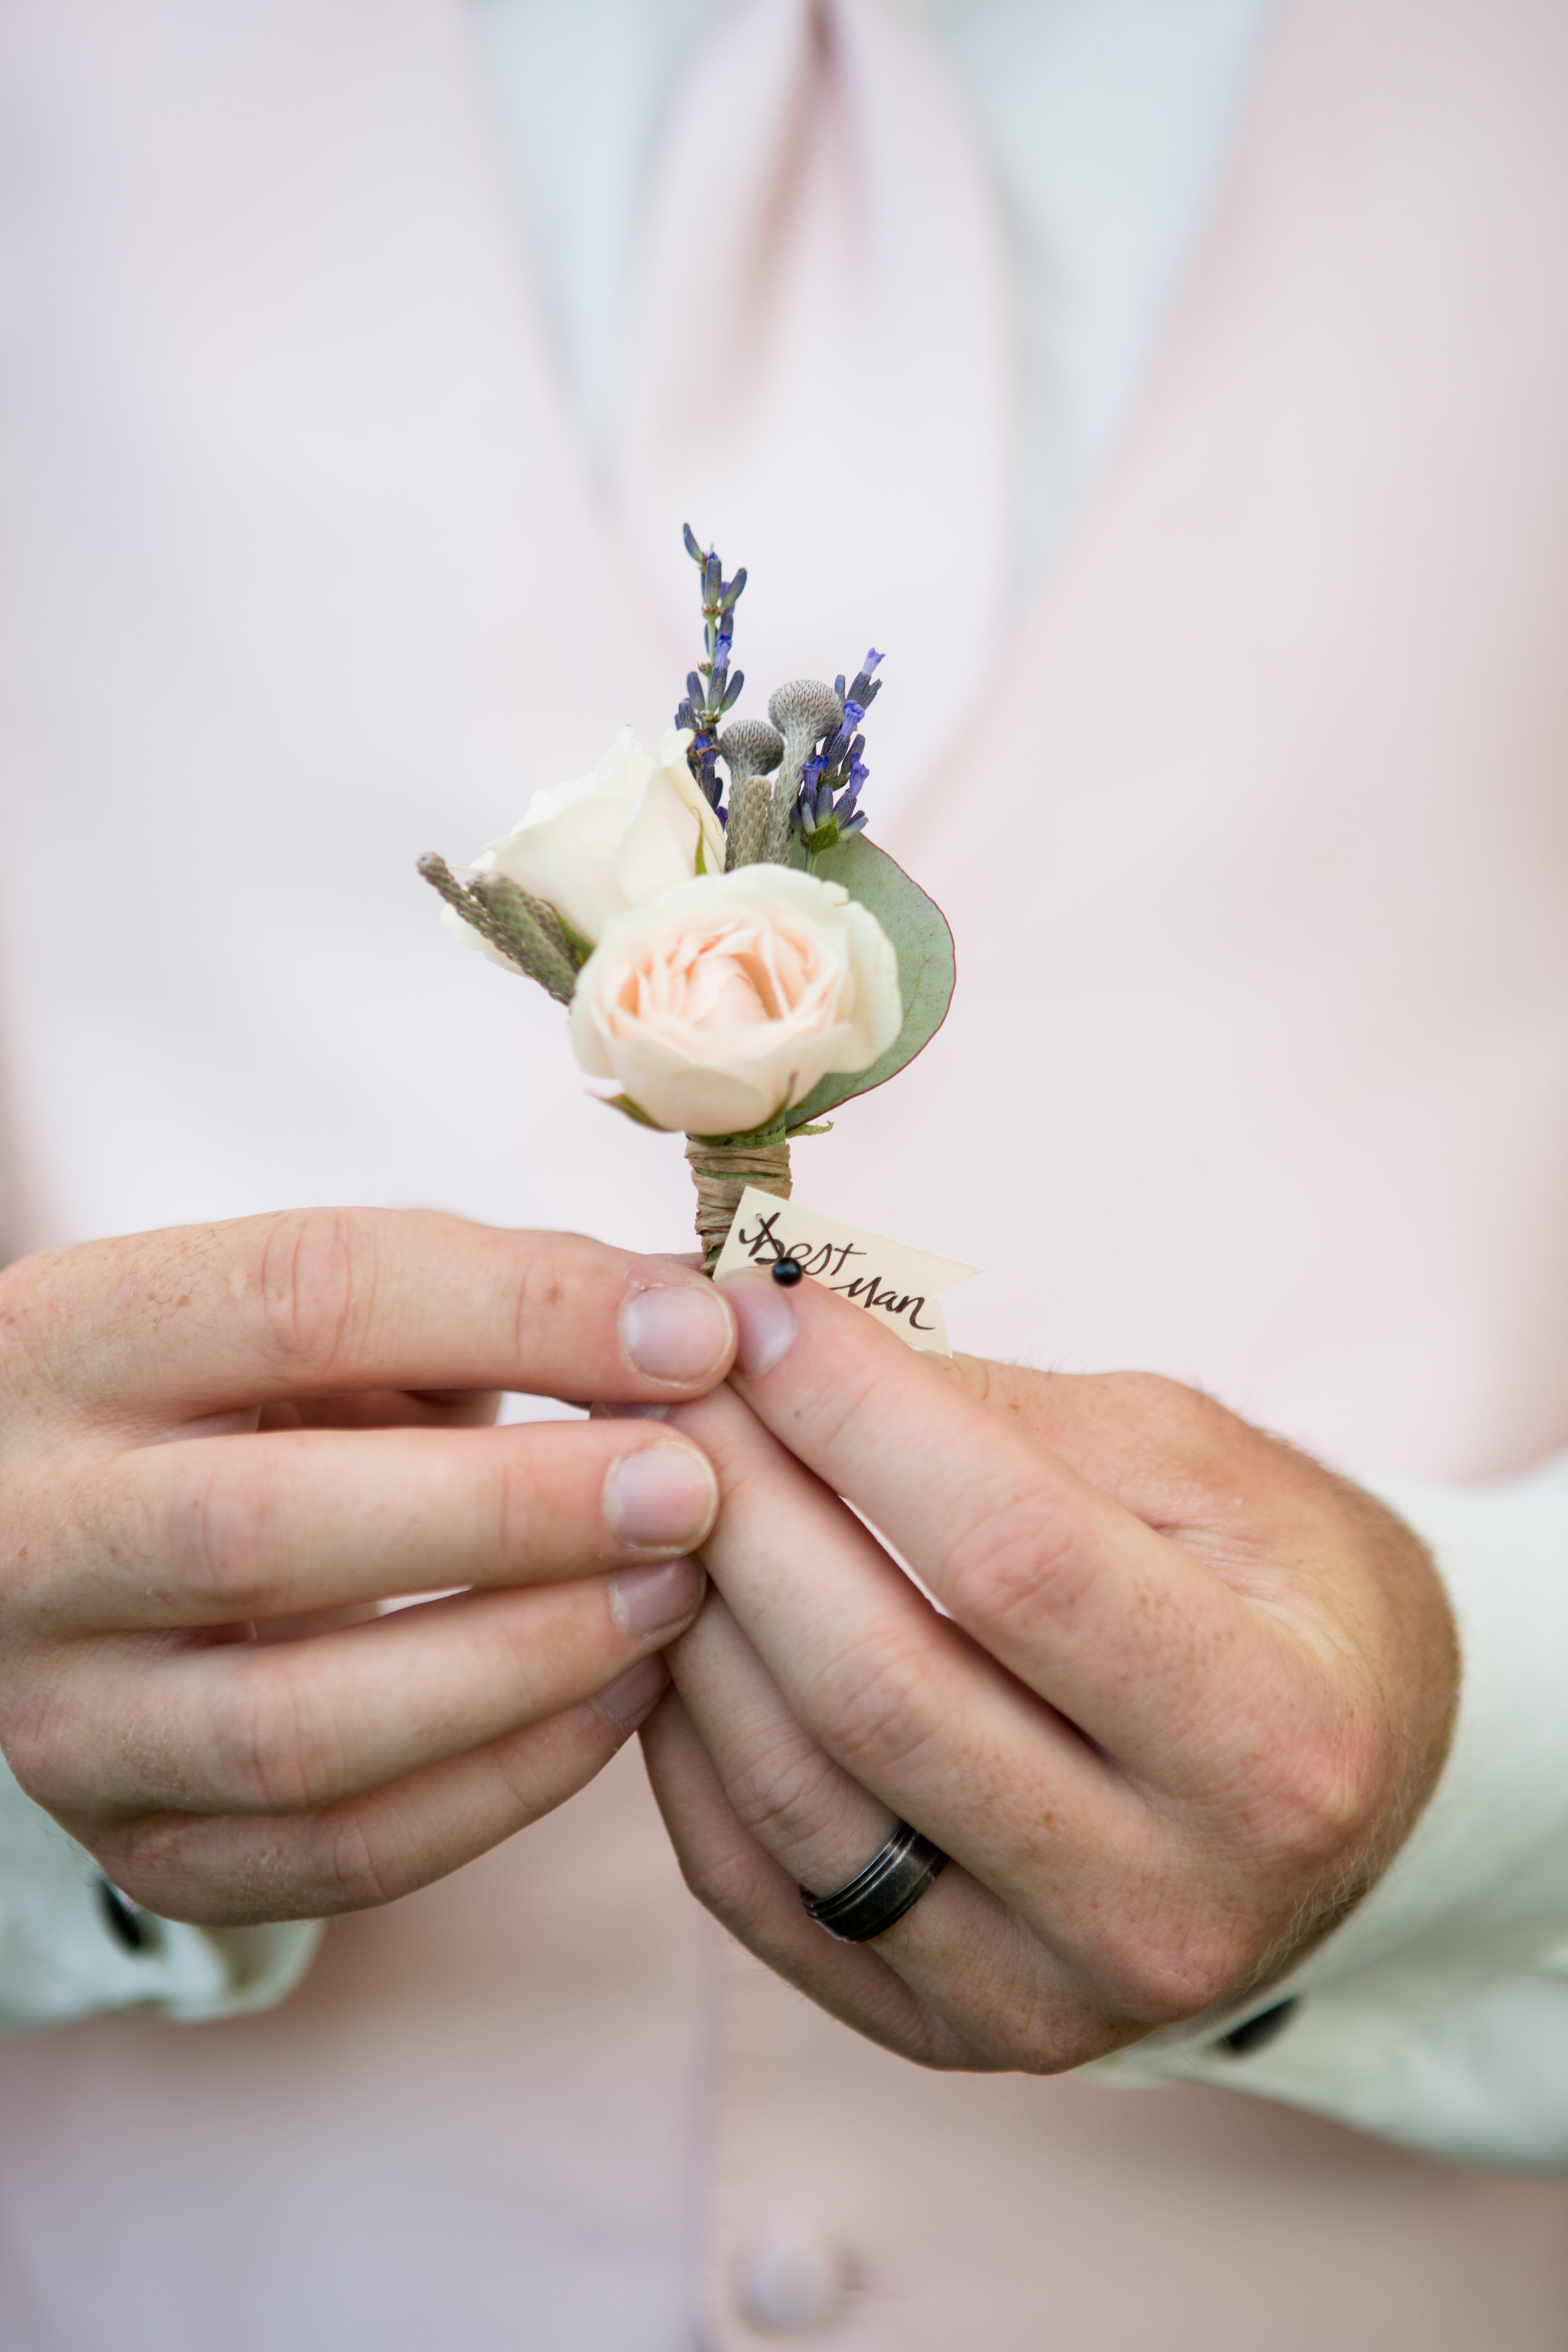 Flowers by Lace and Lilies, blush spray rose and lavender - rustic mountain manly boutonniere - father